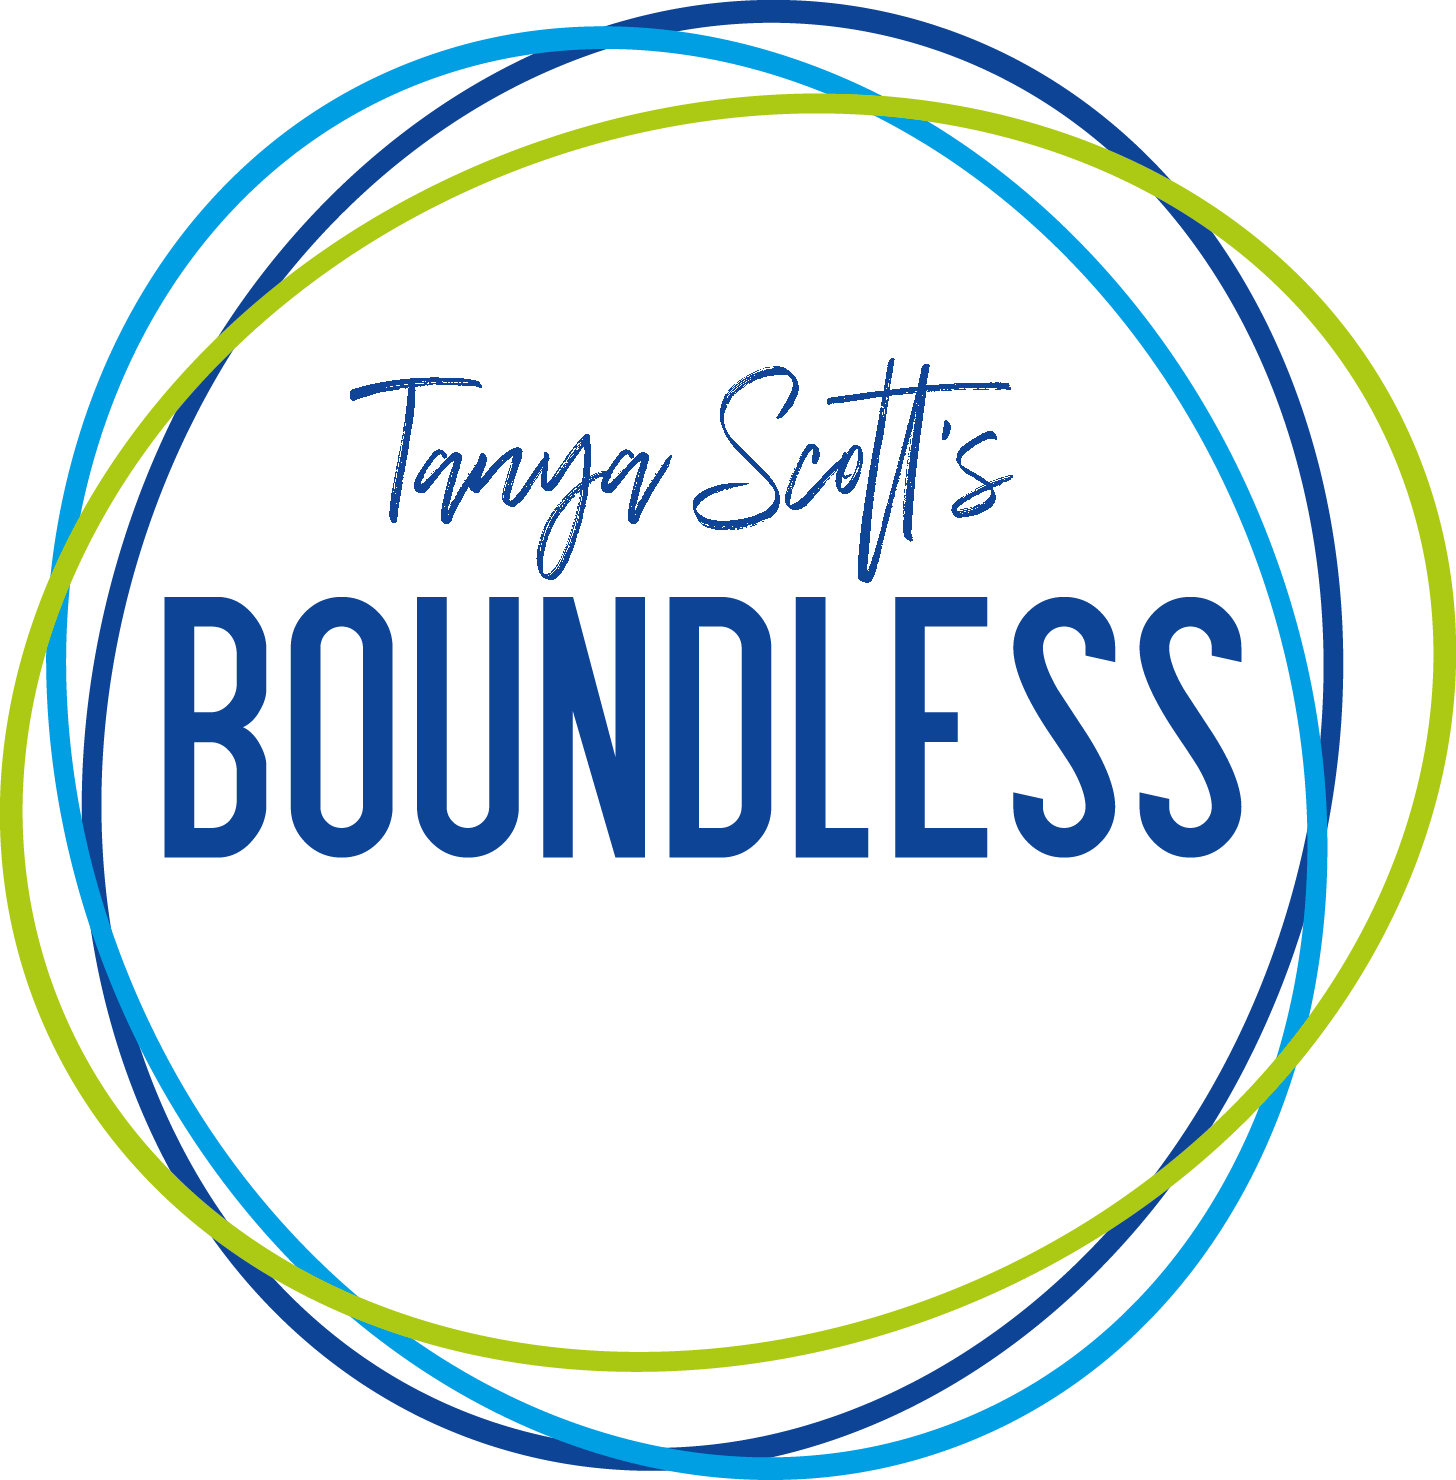 Tanya Scott's Boundless